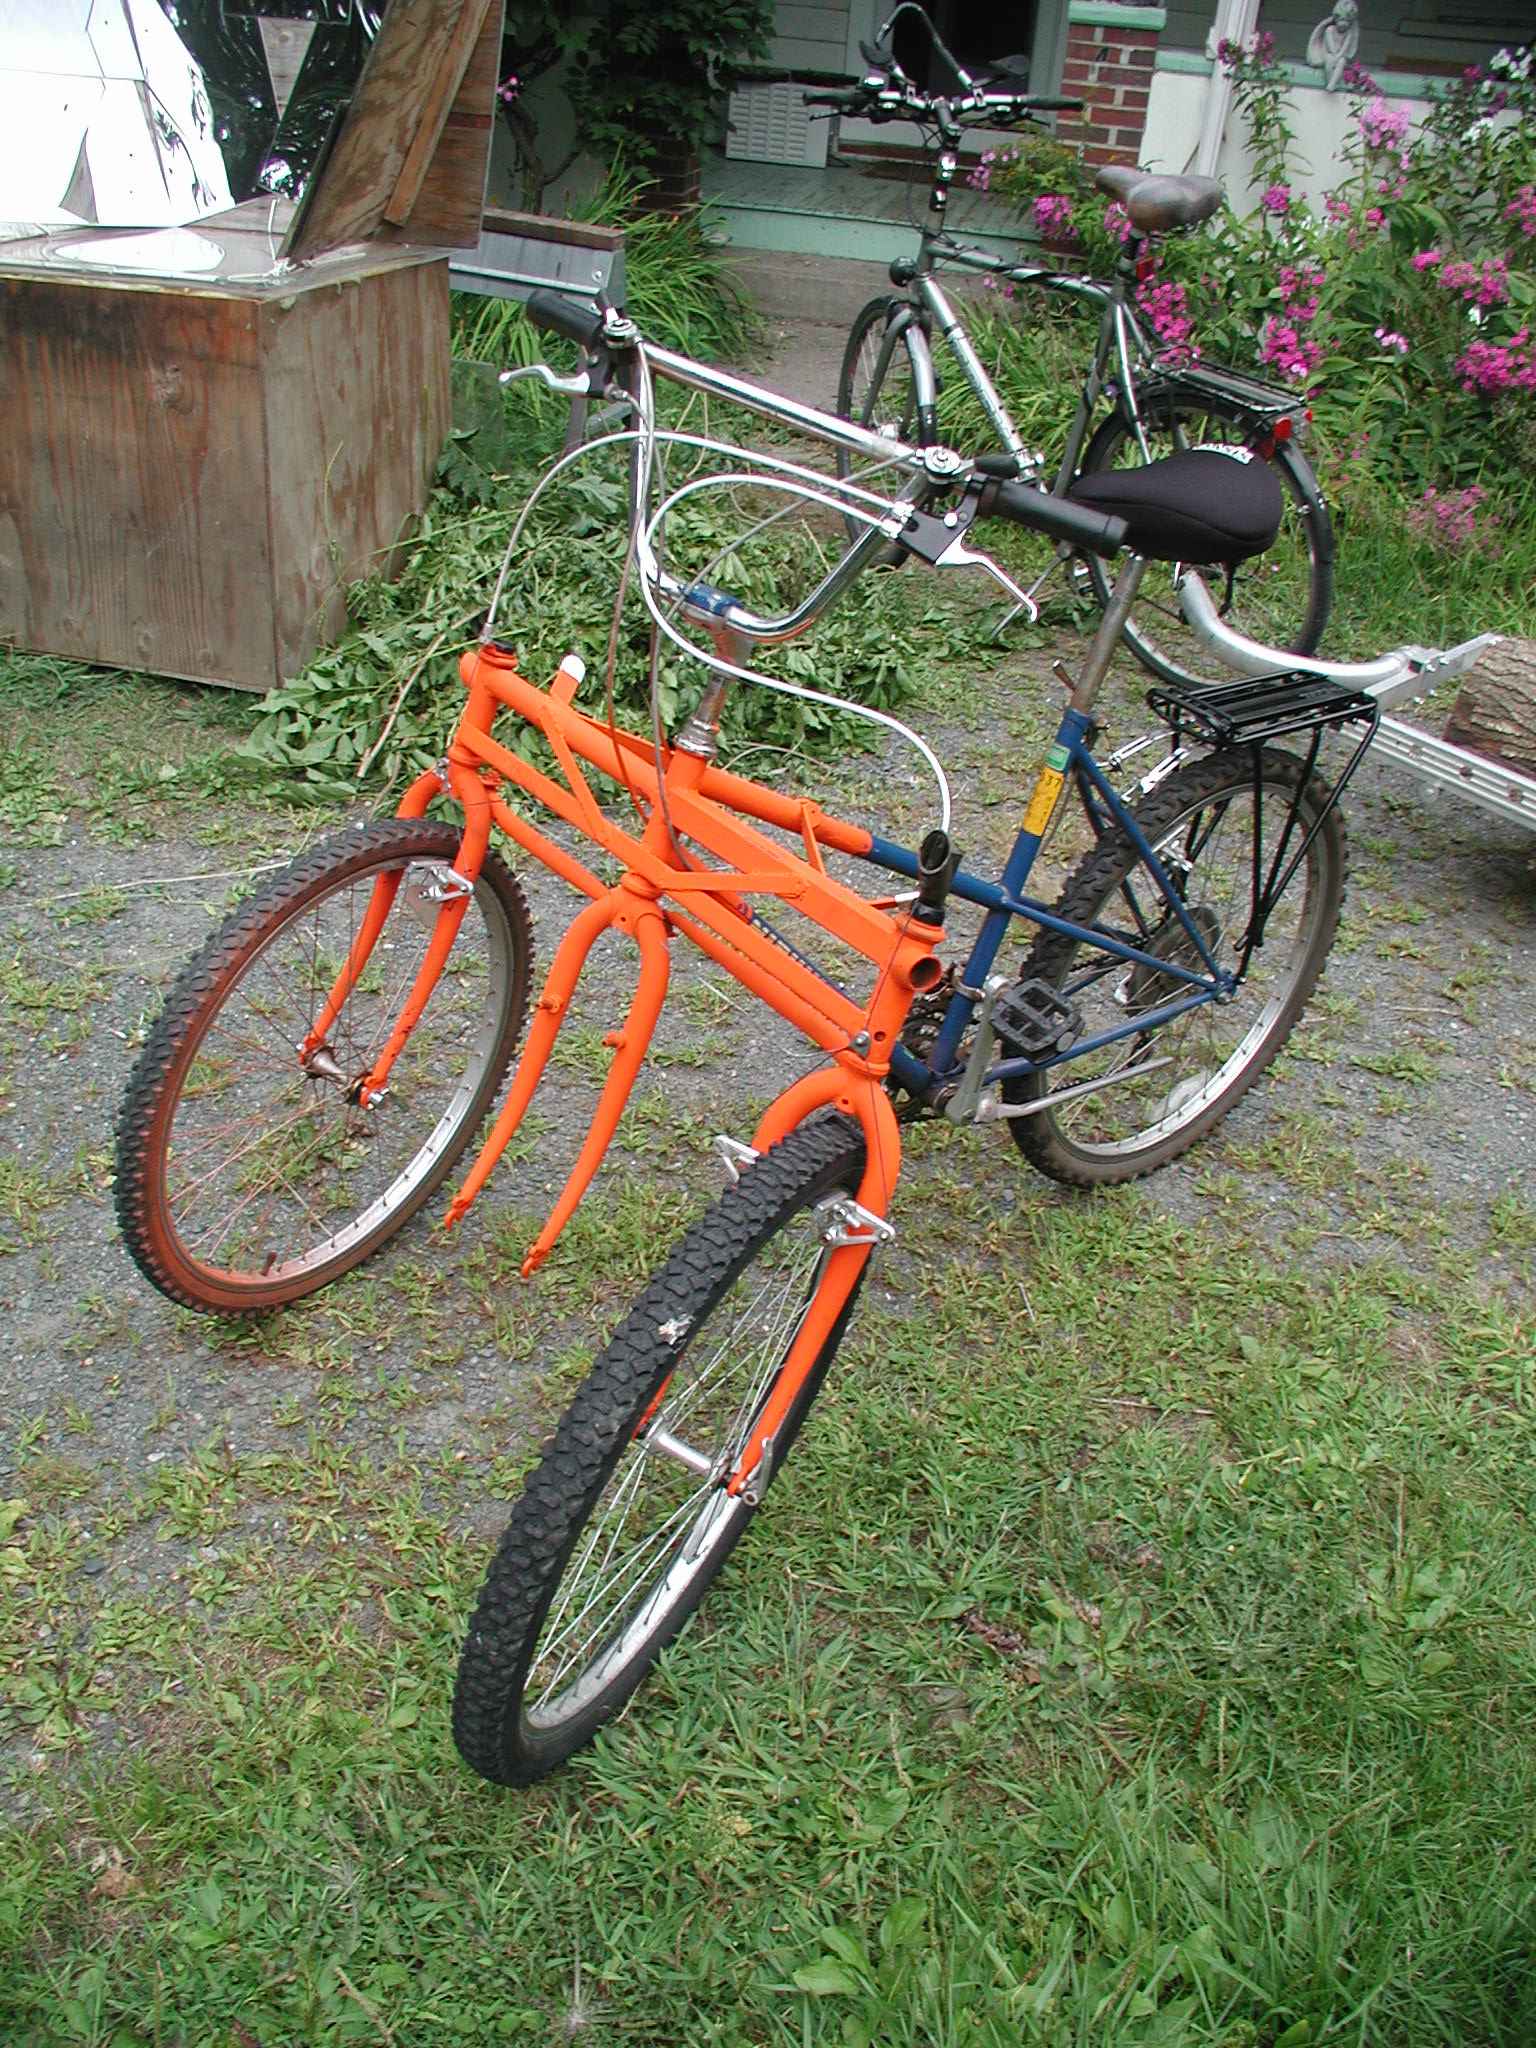 Front Two Wheel Bicycles http://www.transitionamherst.org/blog/projects/building-community-with-bicycles/olympus-digital-camera-11/